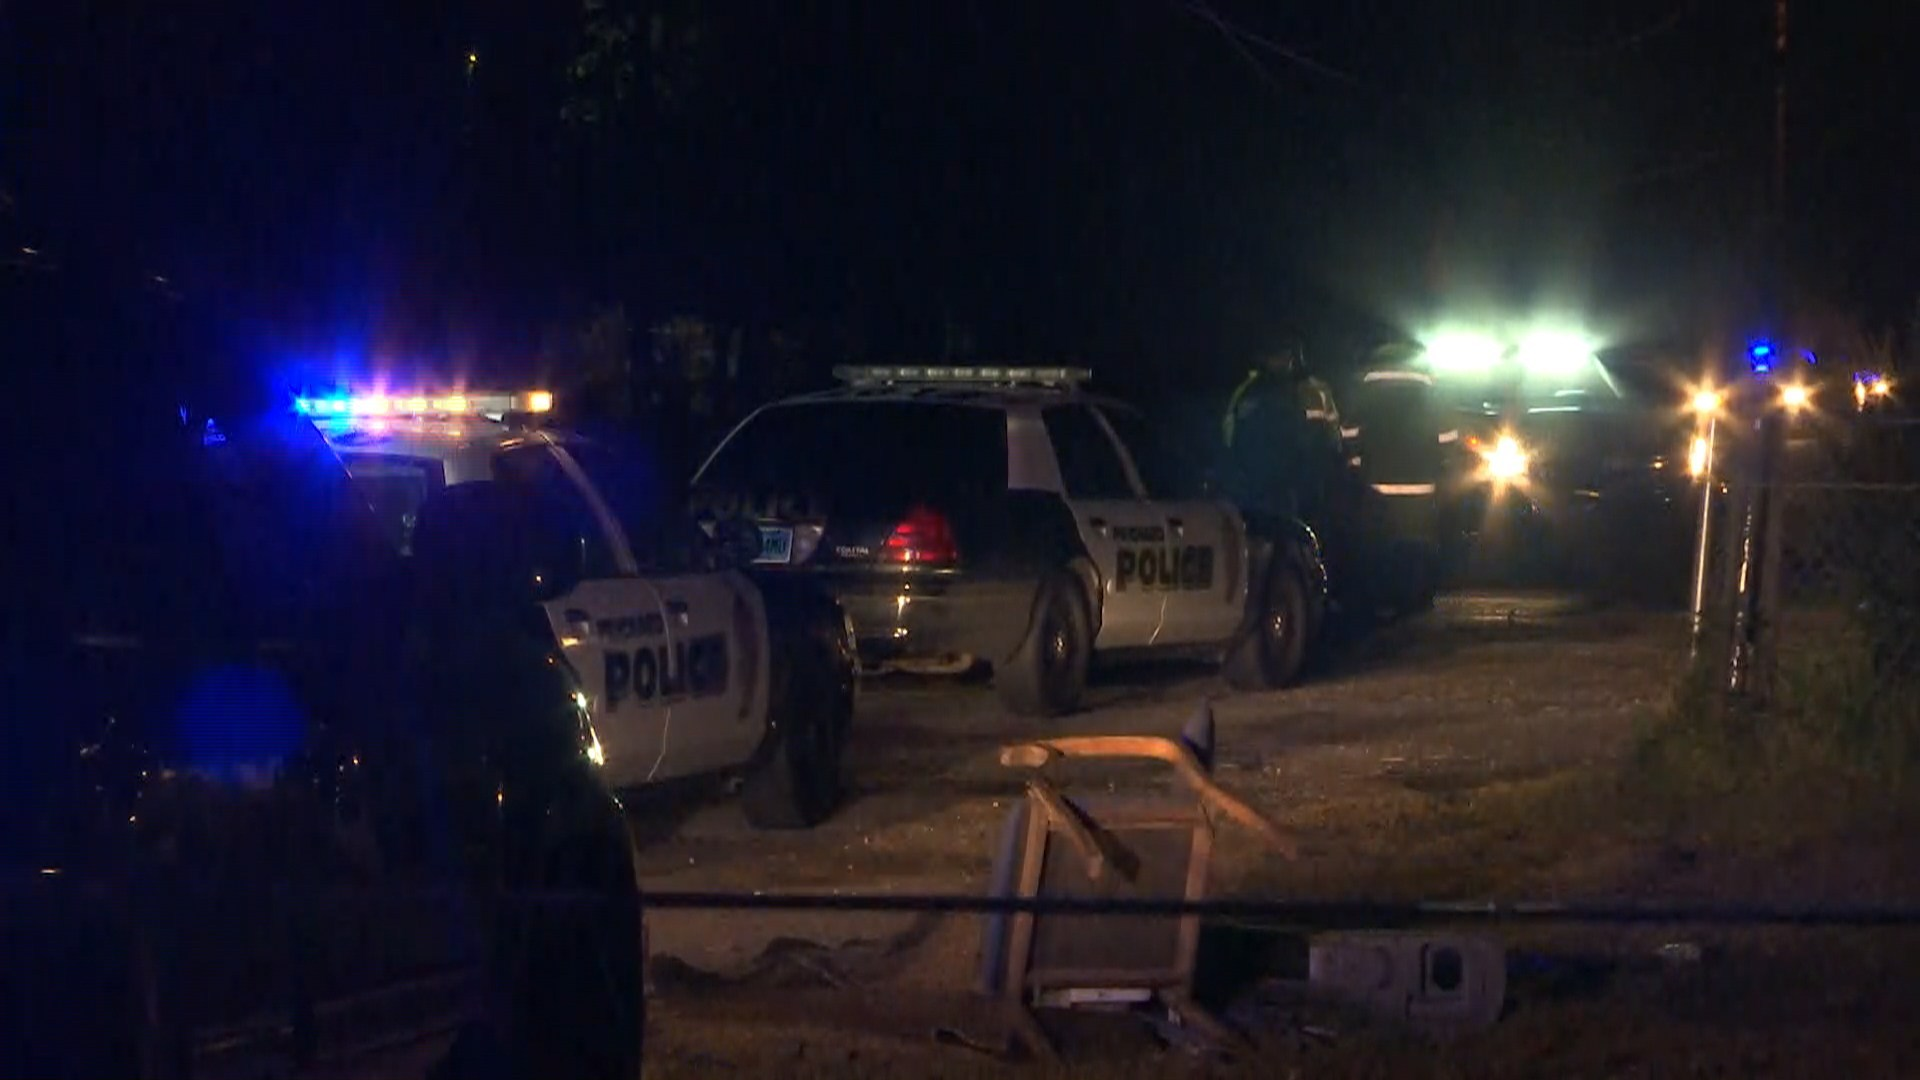 [WATCH] Mobile County Sheriff's Office Confirms Man Killed ...